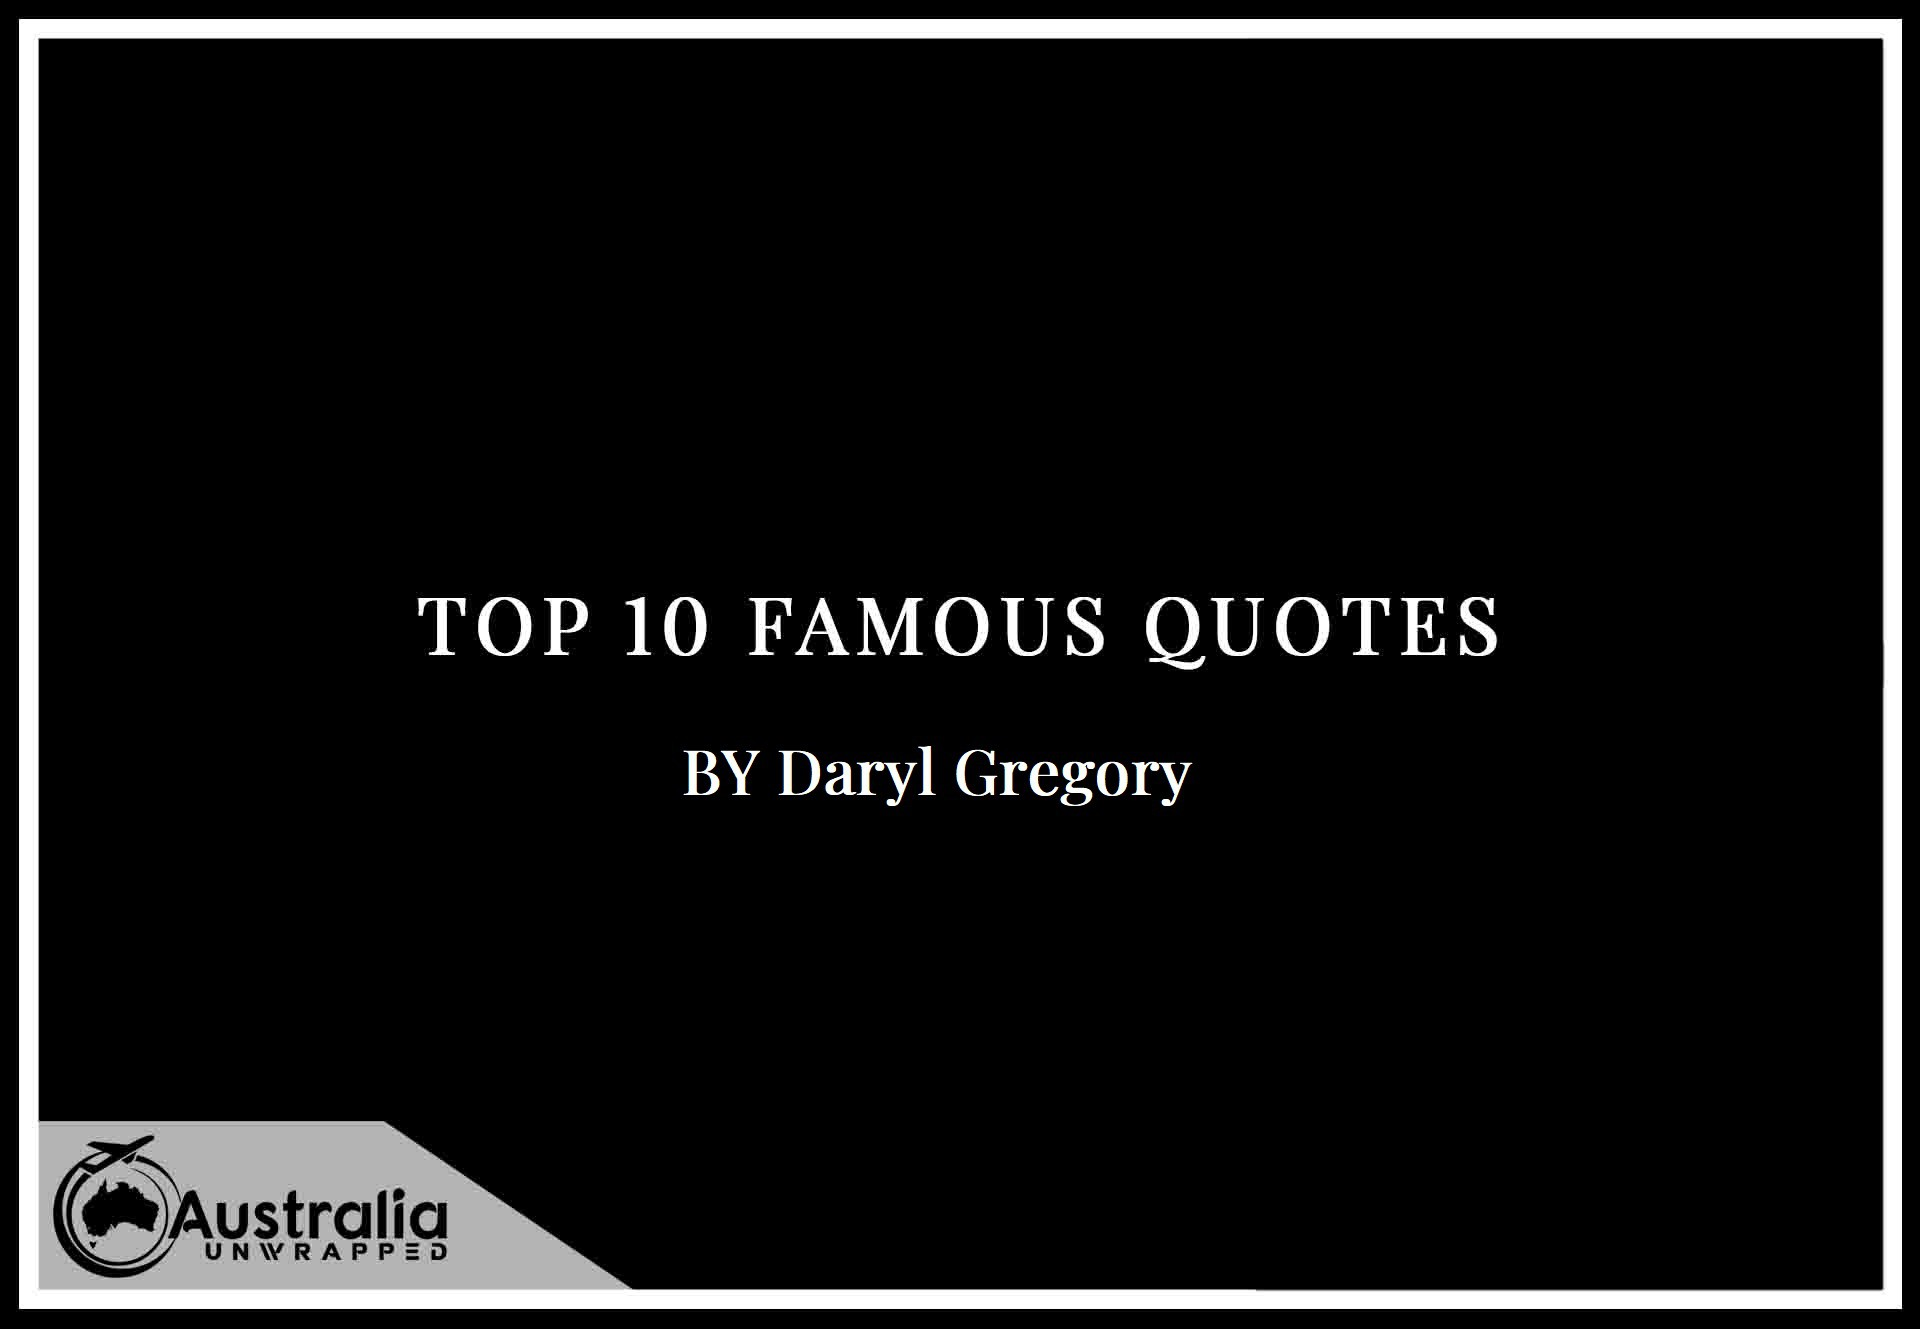 Top 10 Famous Quotes by Author Daryl Gregory